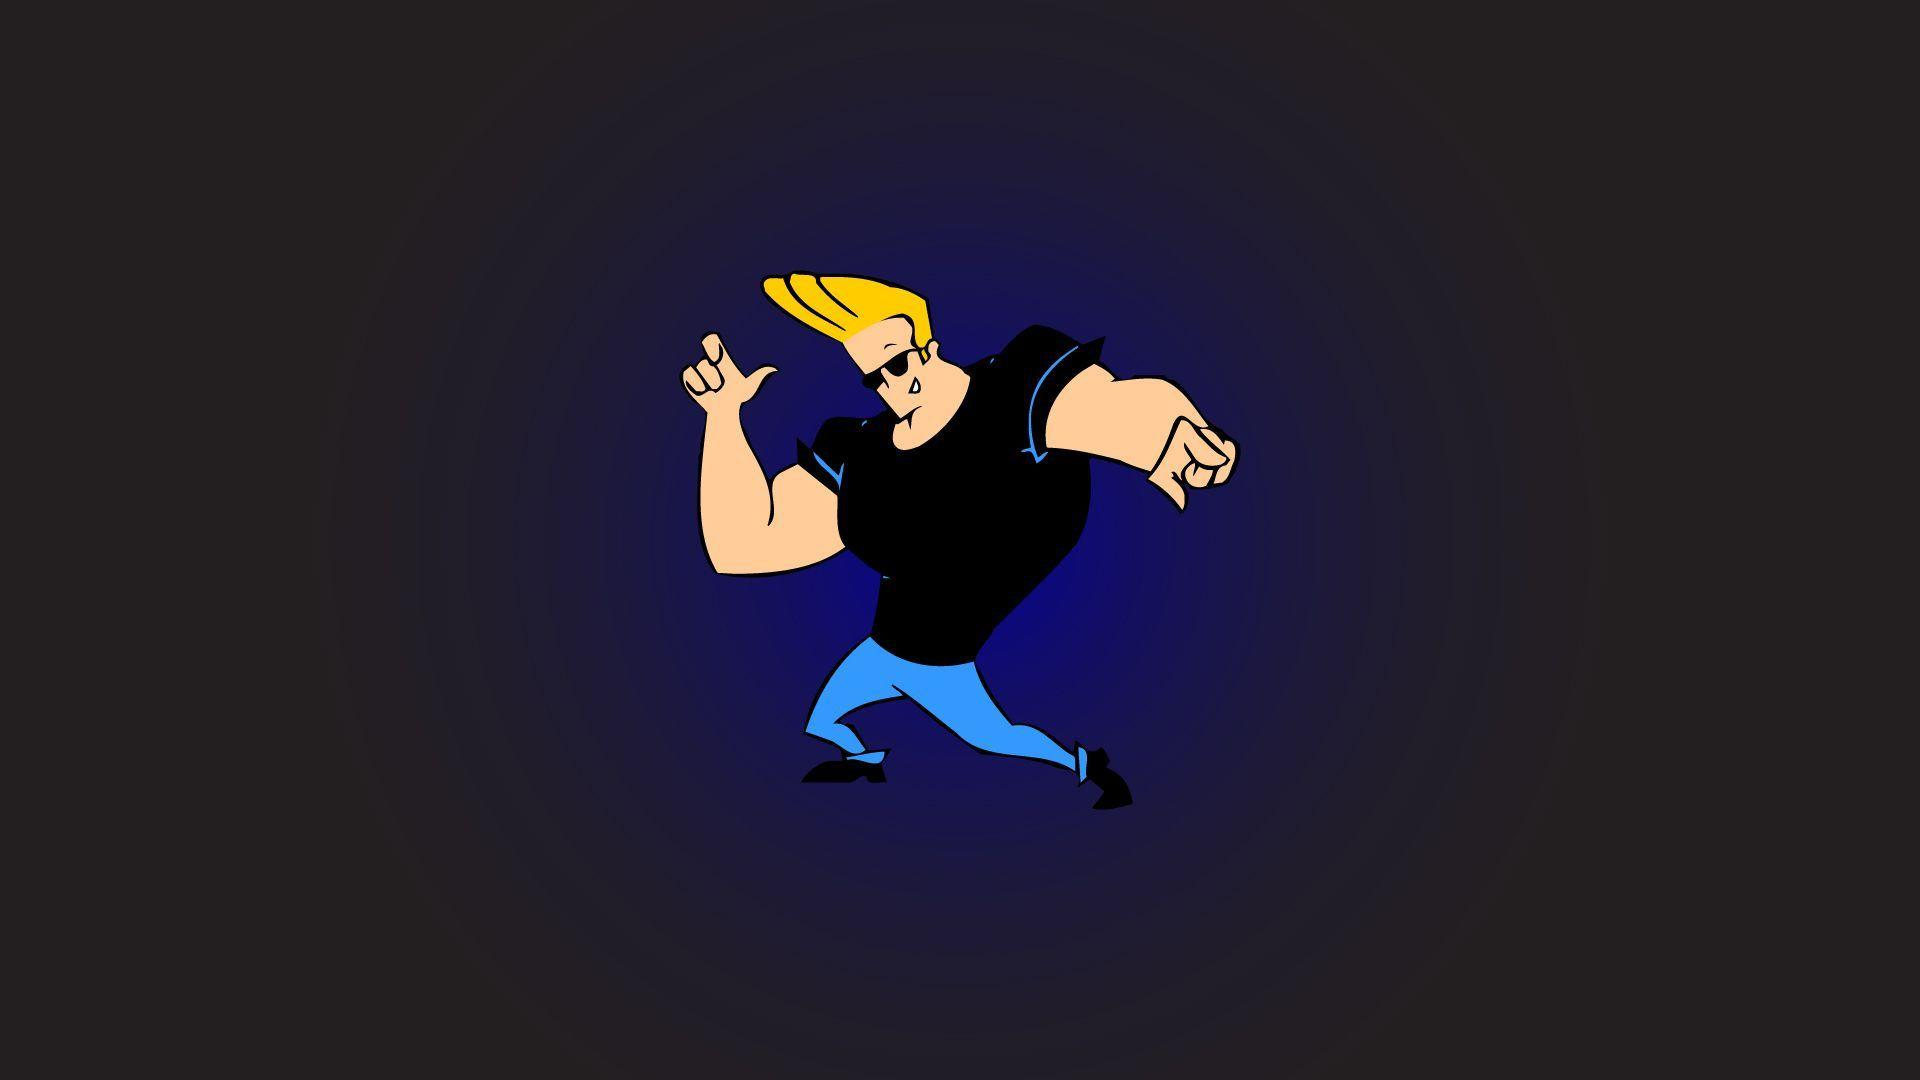 Johnny Bravo Wallpapers For Iphone Best HD Wallpaper